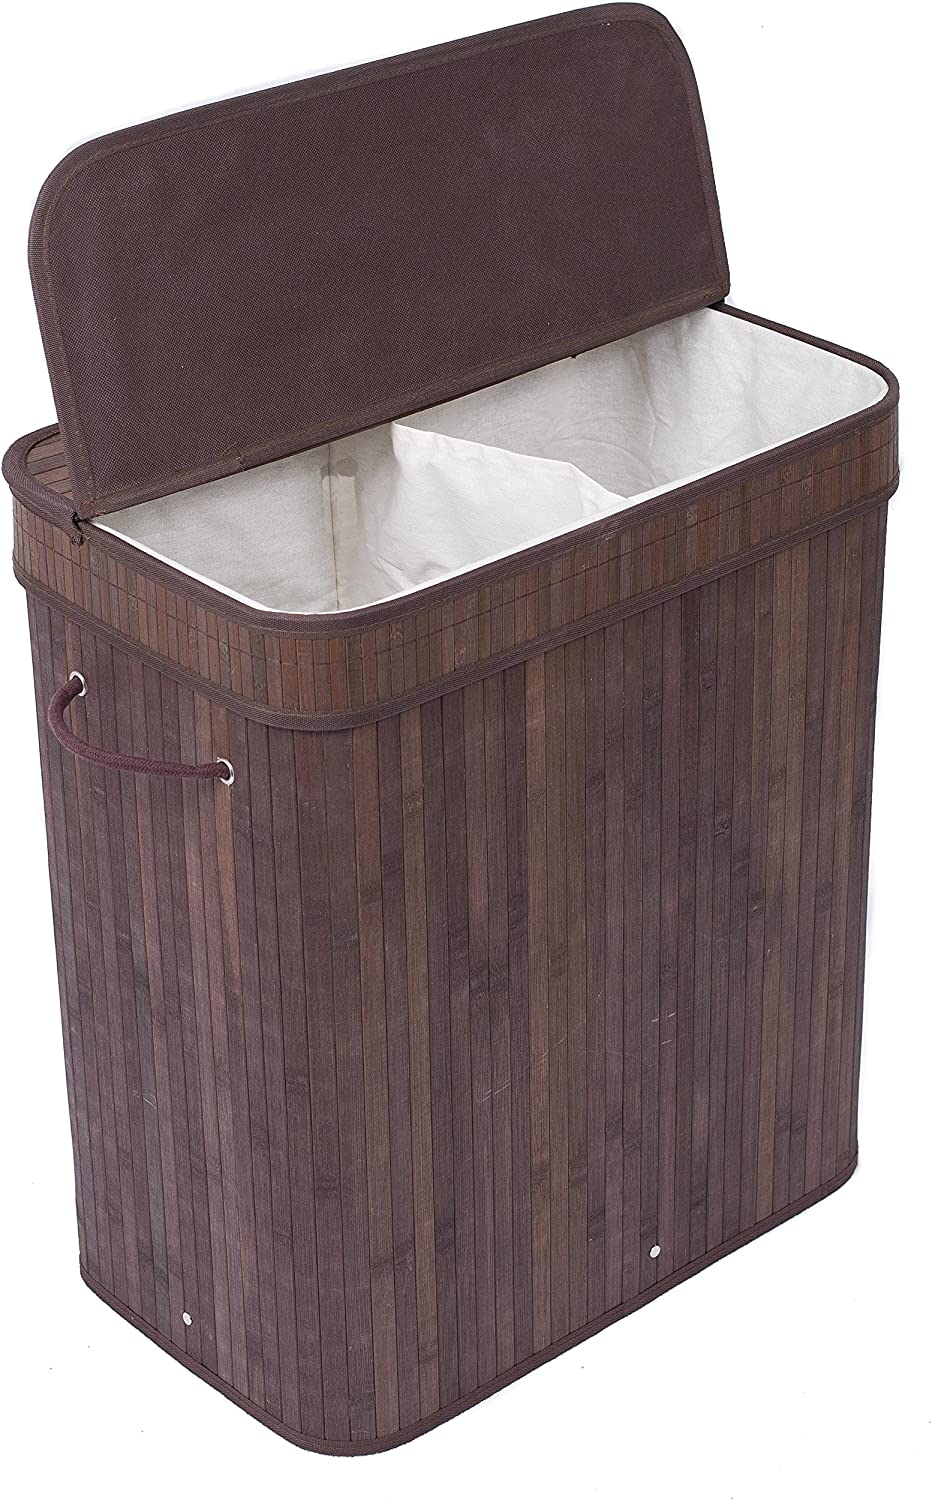 BIRDROCK HOME Double Laundry Hamper with Lid and Cloth Liner - Bamboo - Espresso - Easily Transport Laundry Basket - 2 Section Collapsible Hamper - String Handles